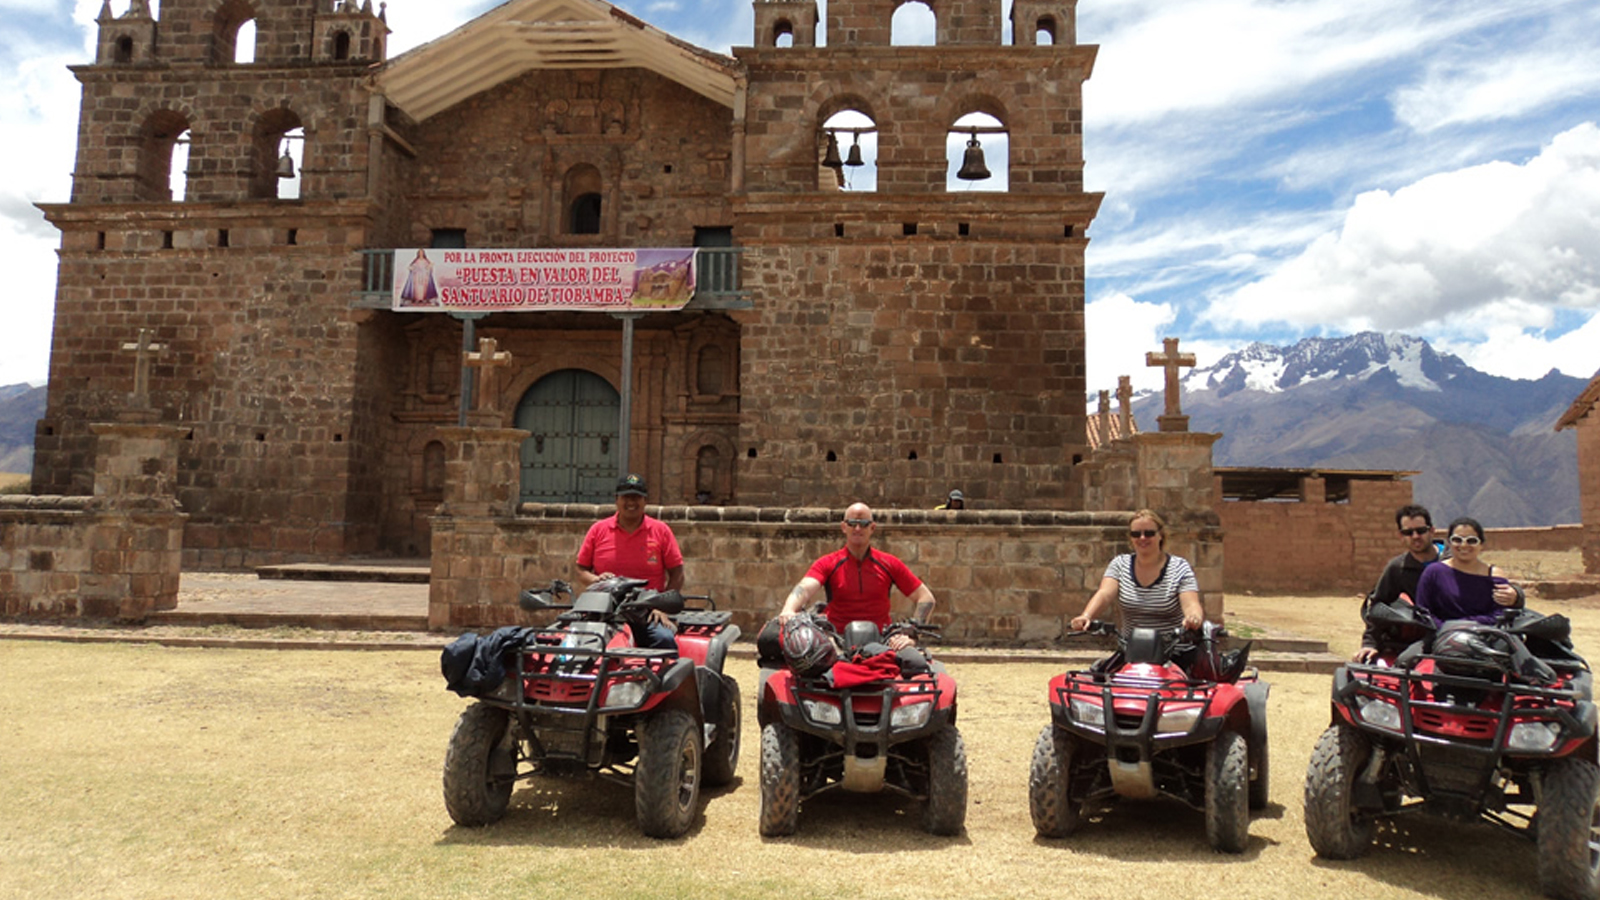 Foto 1 de Maras - Moray by quad bike half-day